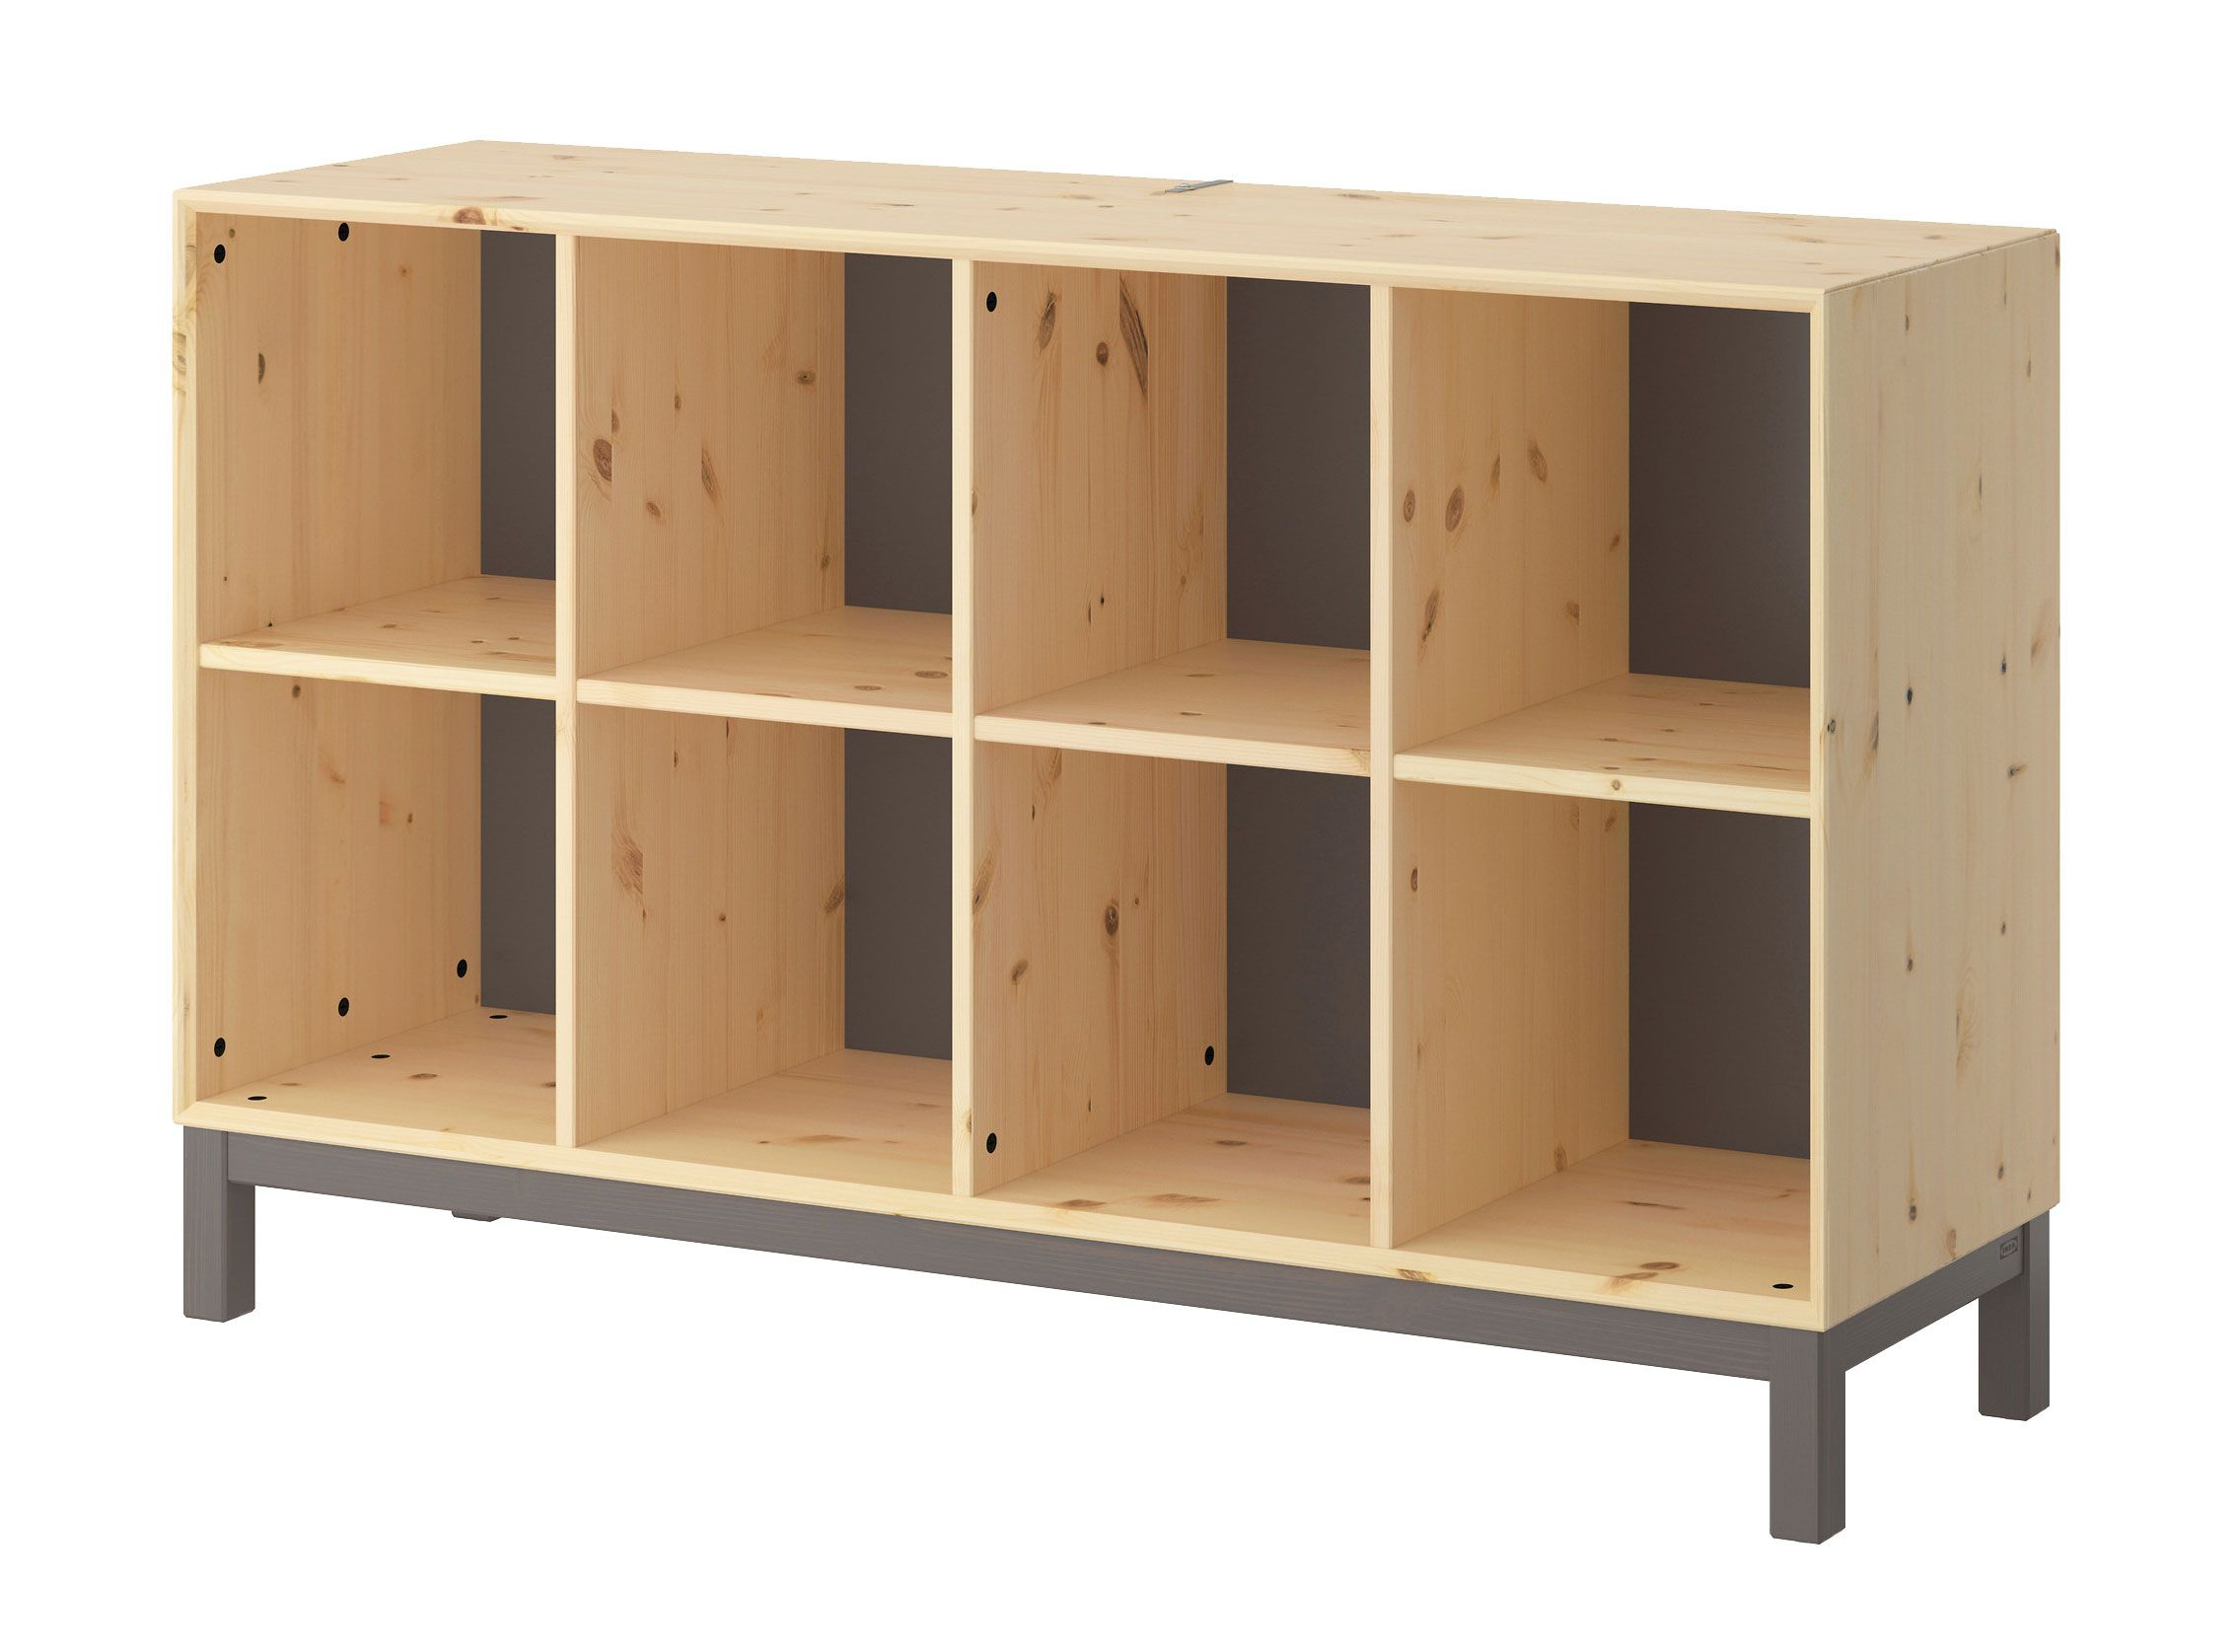 medium resolution of norn s sideboard basic unit ikea instead of two fold up tables for placing volunteer snacks 2 of these side by side gives table space for food